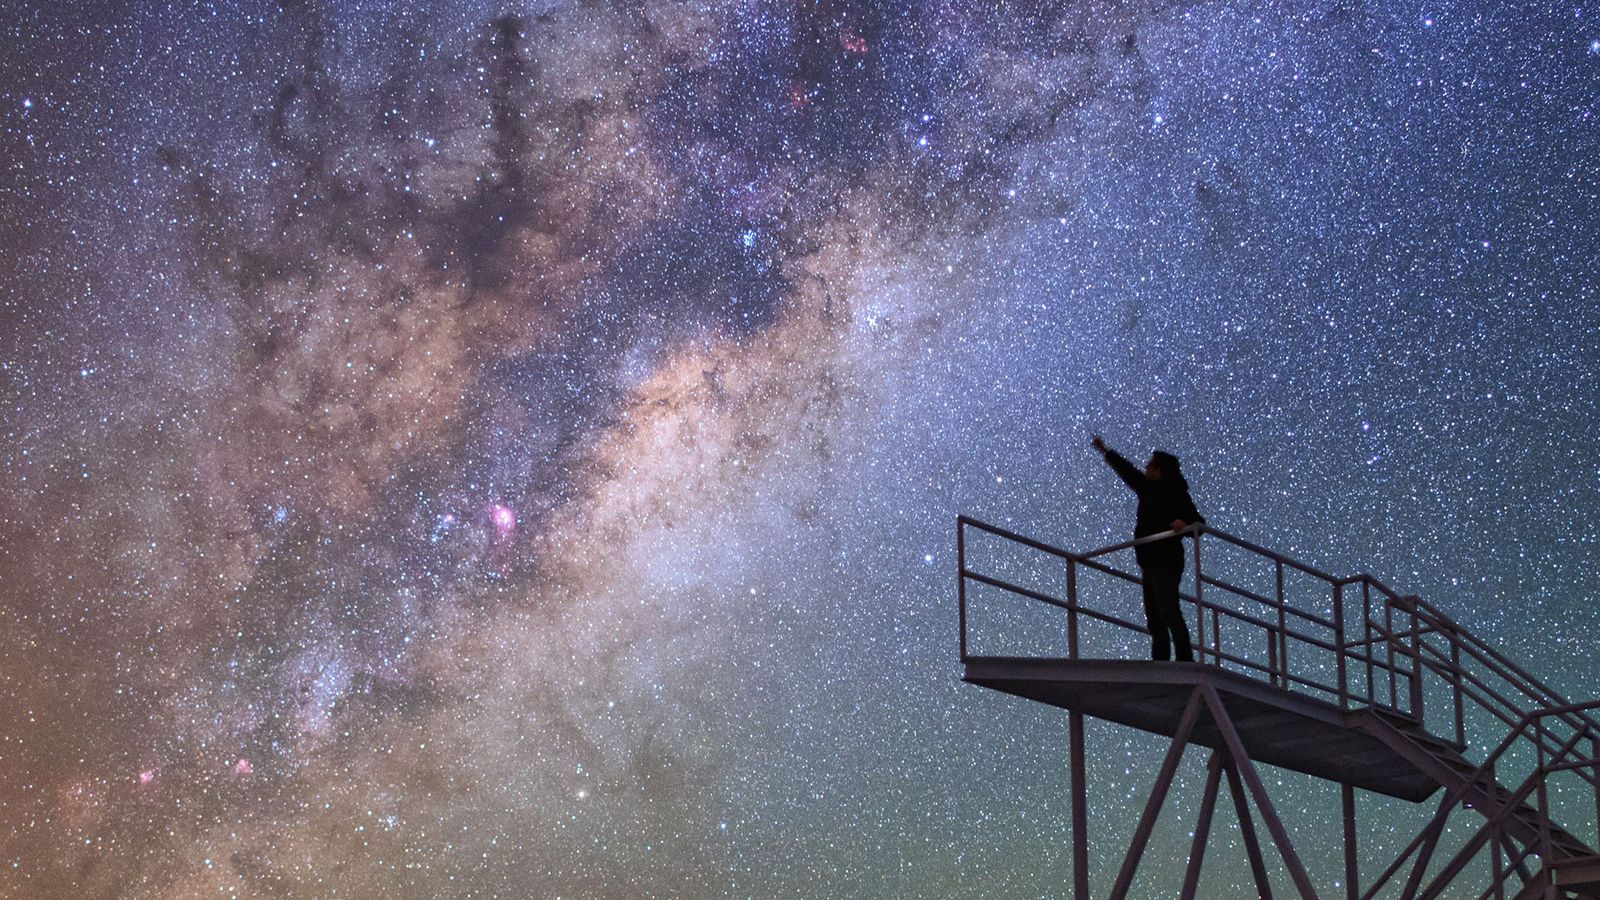 In Chile, the Cerro Paranal Observatory proves to be a great spot for stargazing.